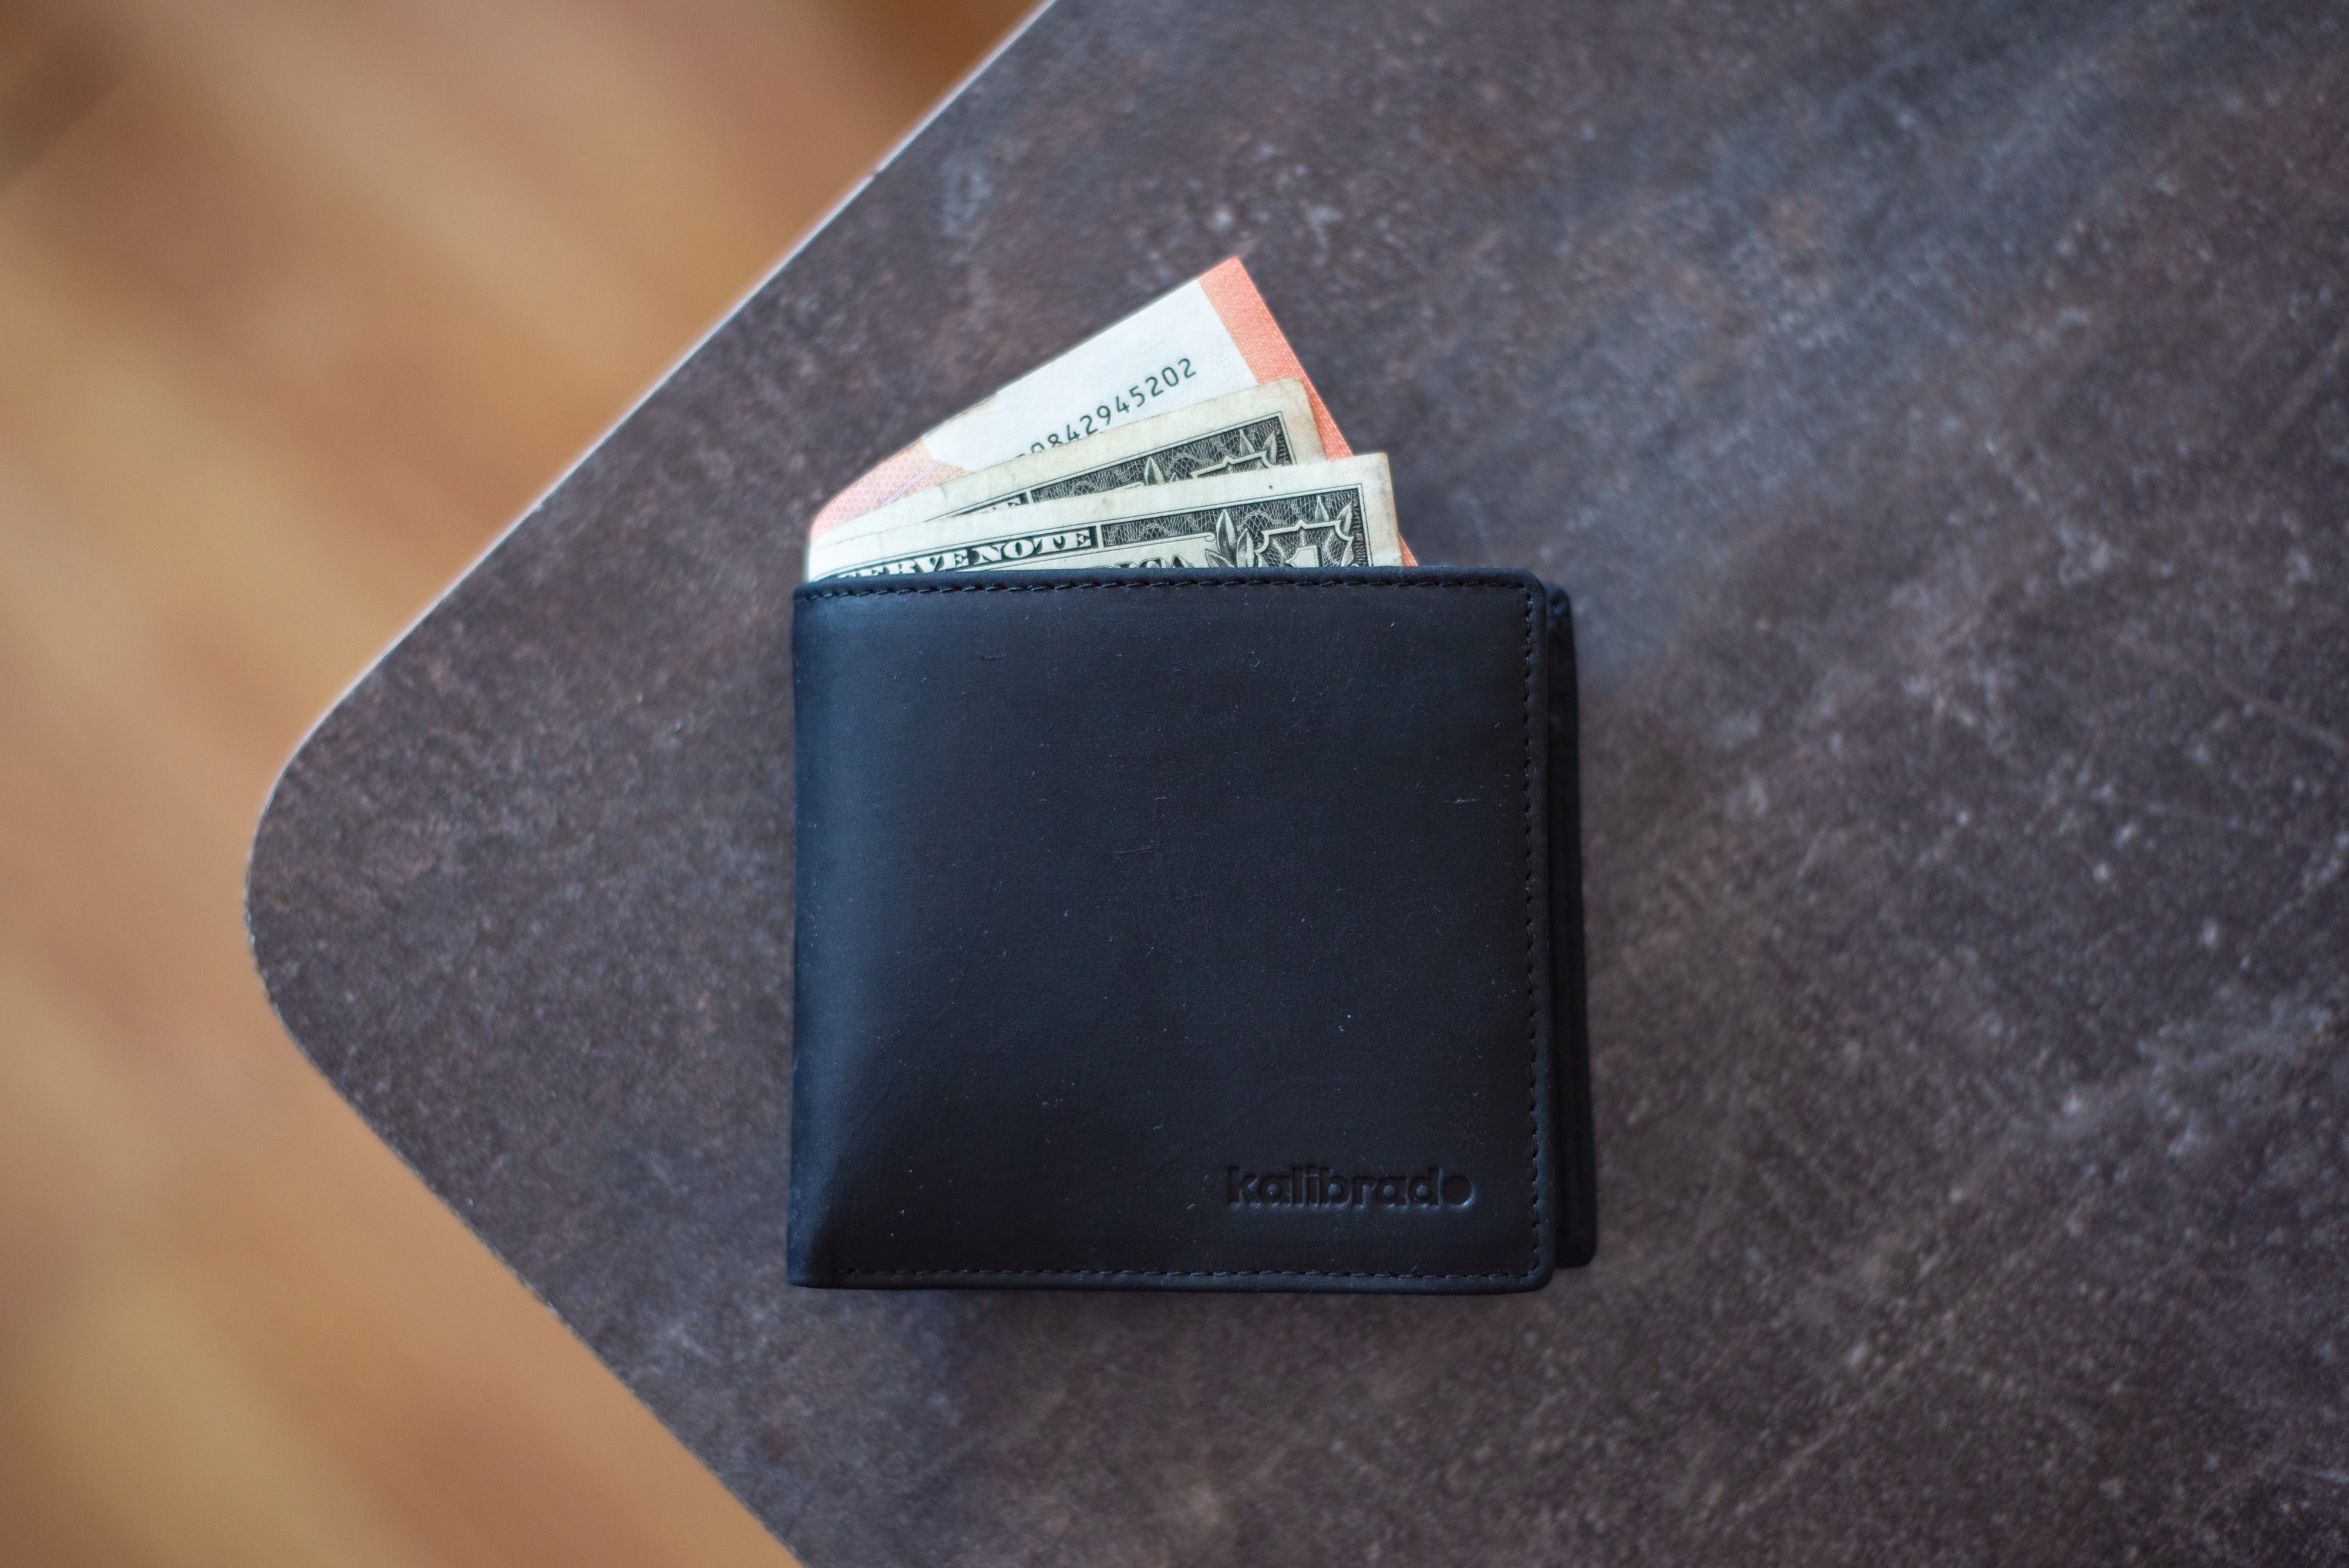 The wallet of one of our three imaginary people